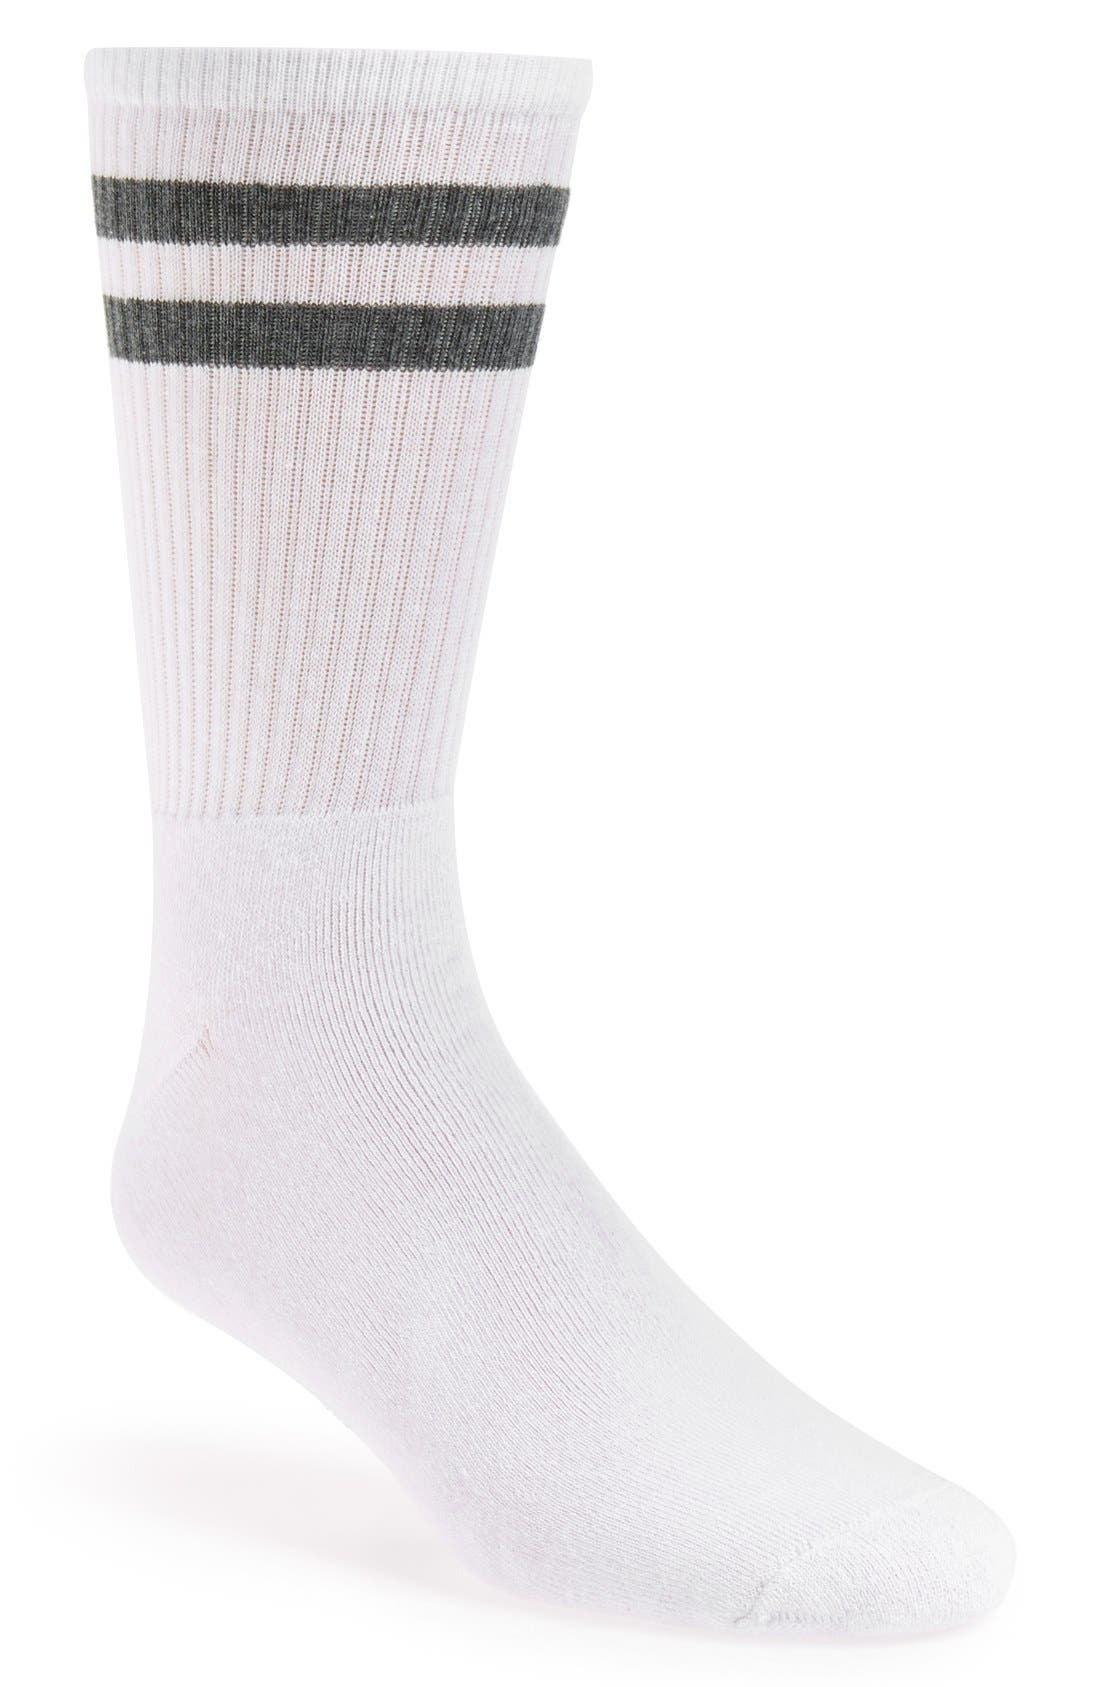 Topman Stripe Tube Socks